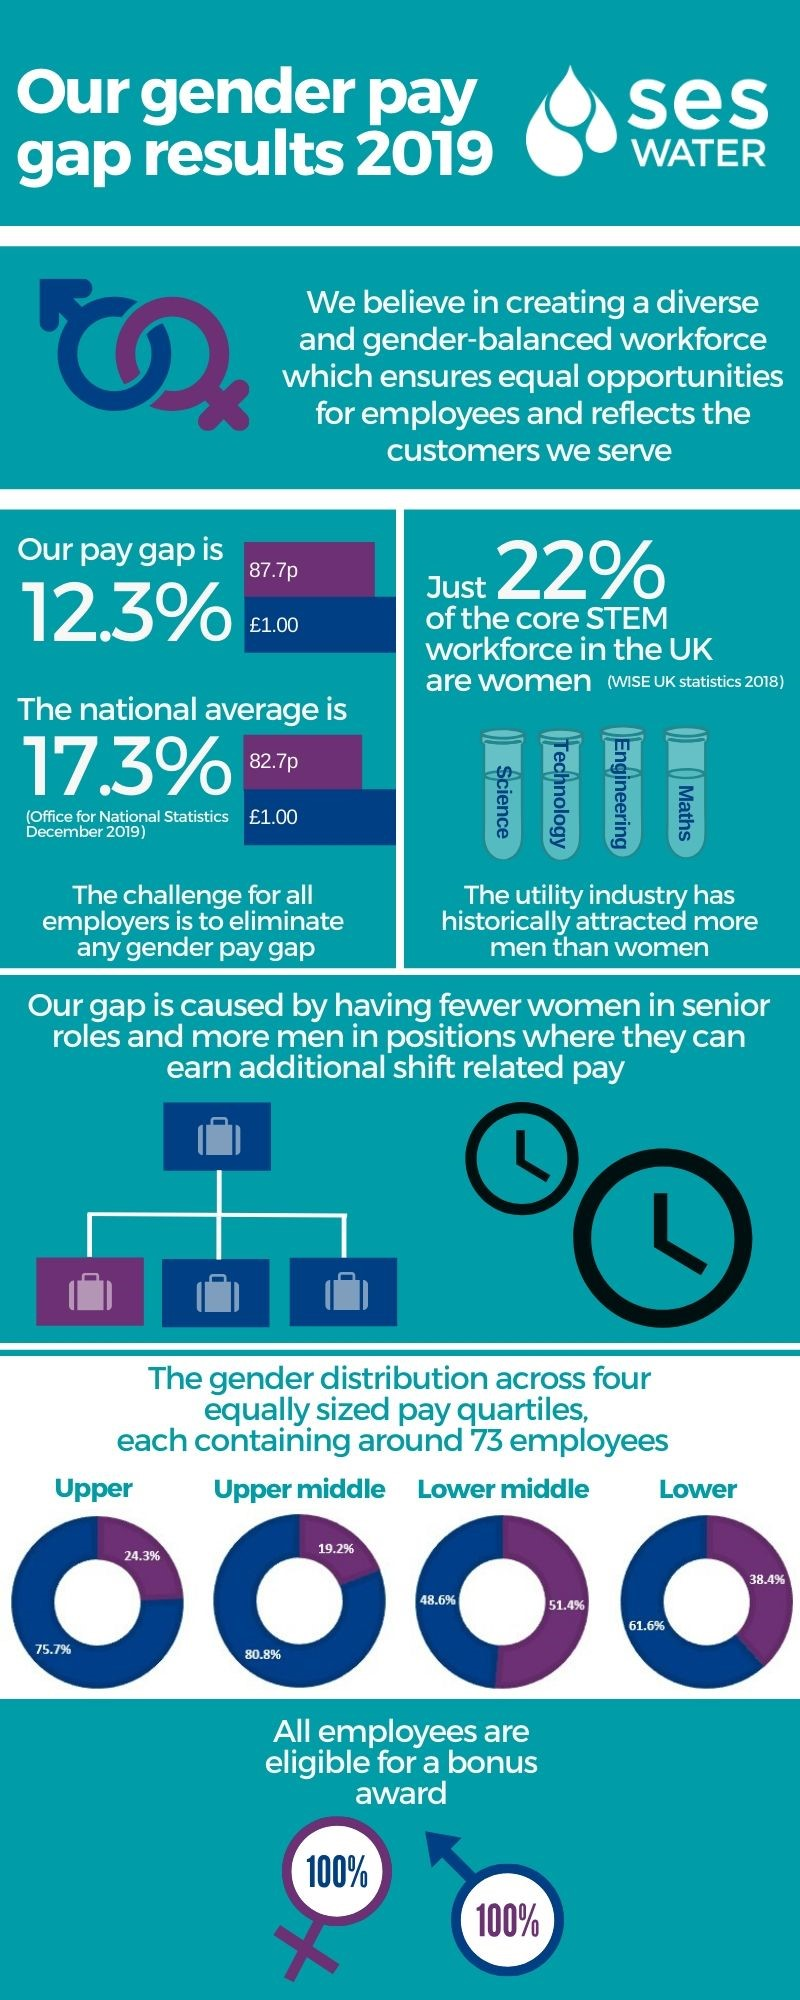 Graphic for our gender pay gap results 2019